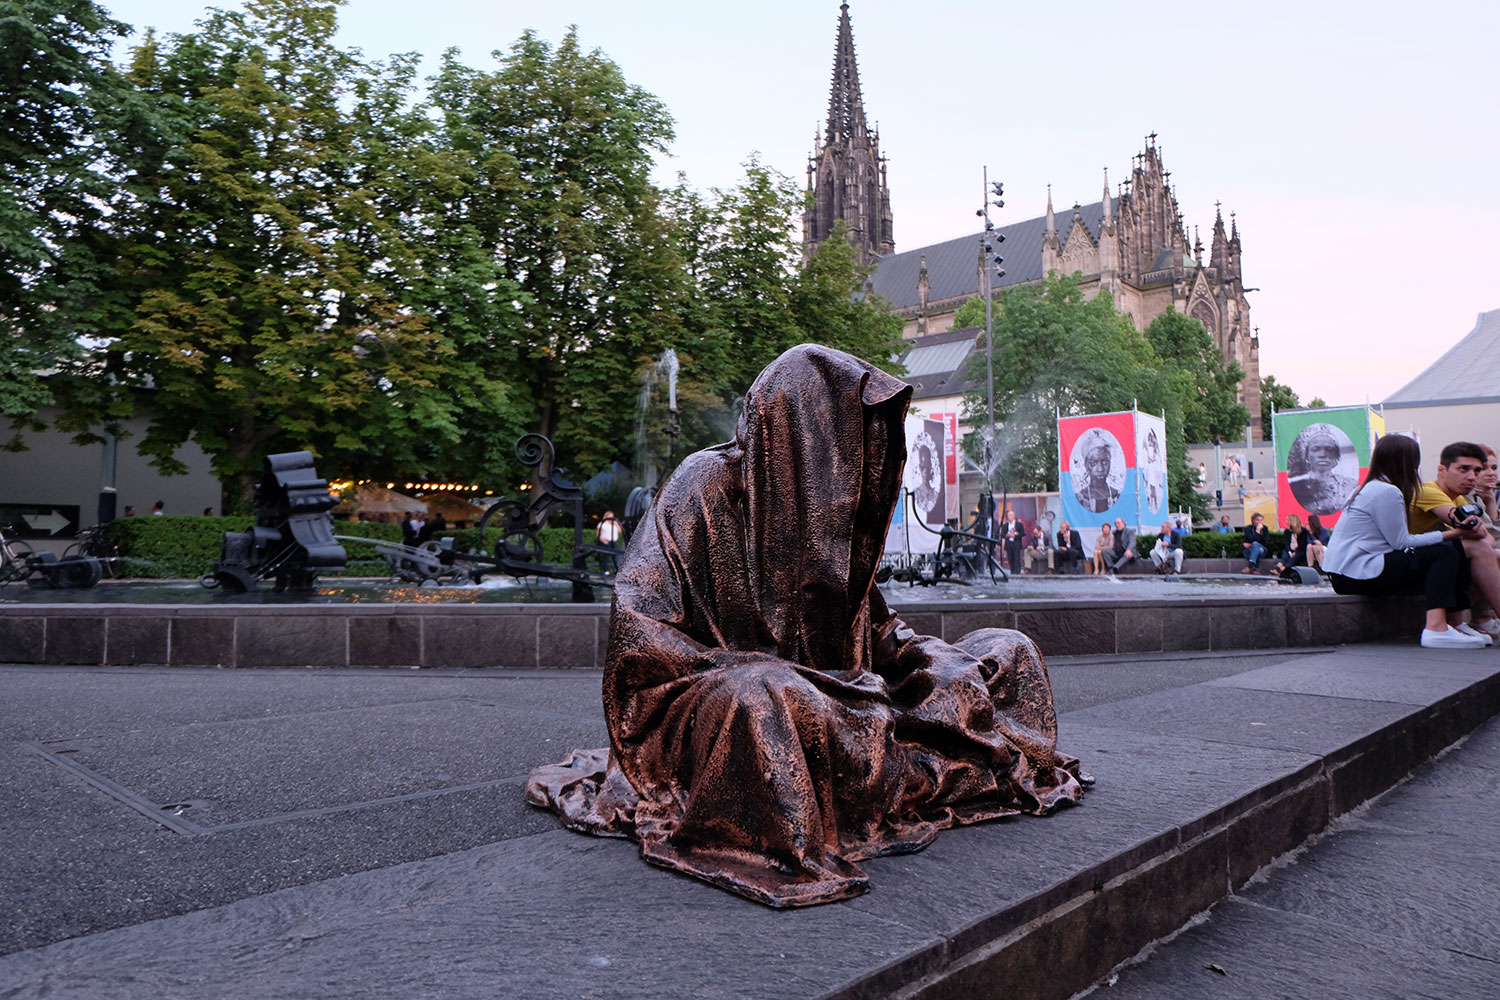 artbasel-swiss-scope-art-guardians-of-time-manfred-kili-kielnhofer-large-scale-contemporary-art-design-sculpture-statue-arts-arte-4757